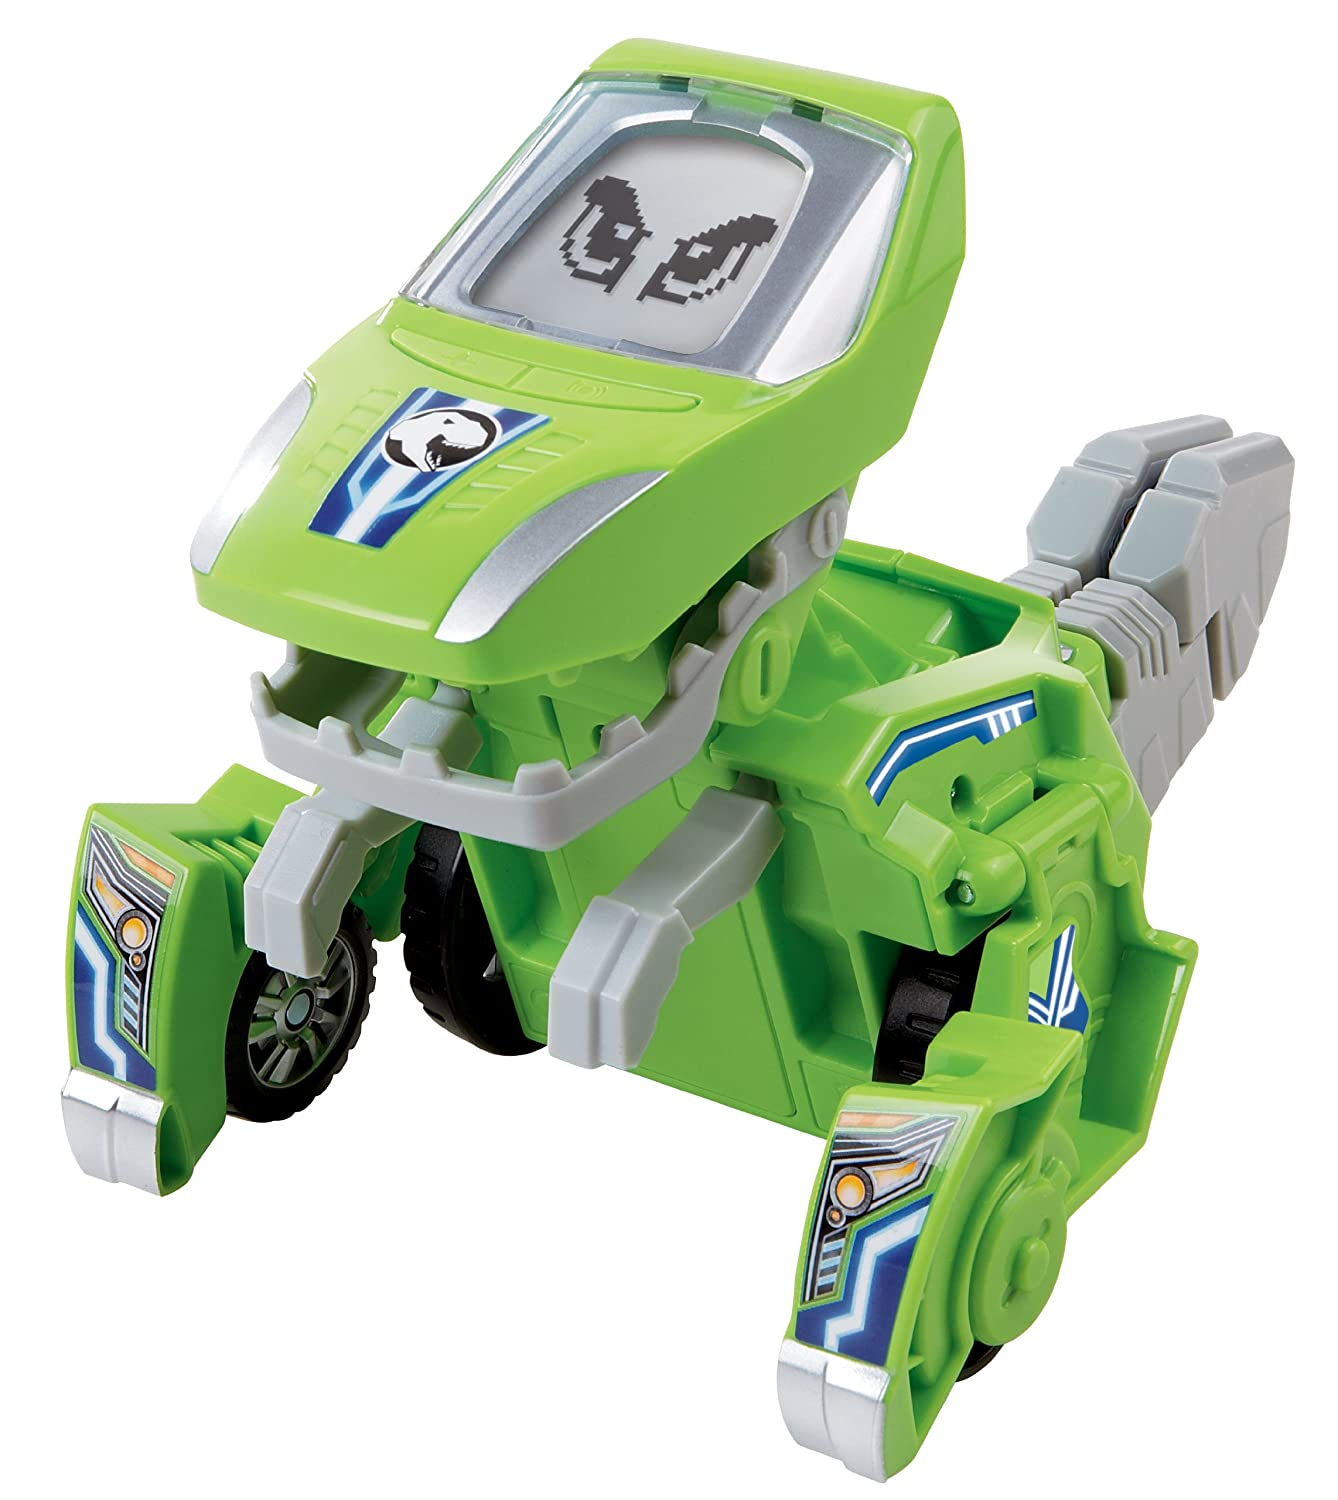 Best Toys For 6 Year Old Boys - Worth The Money?